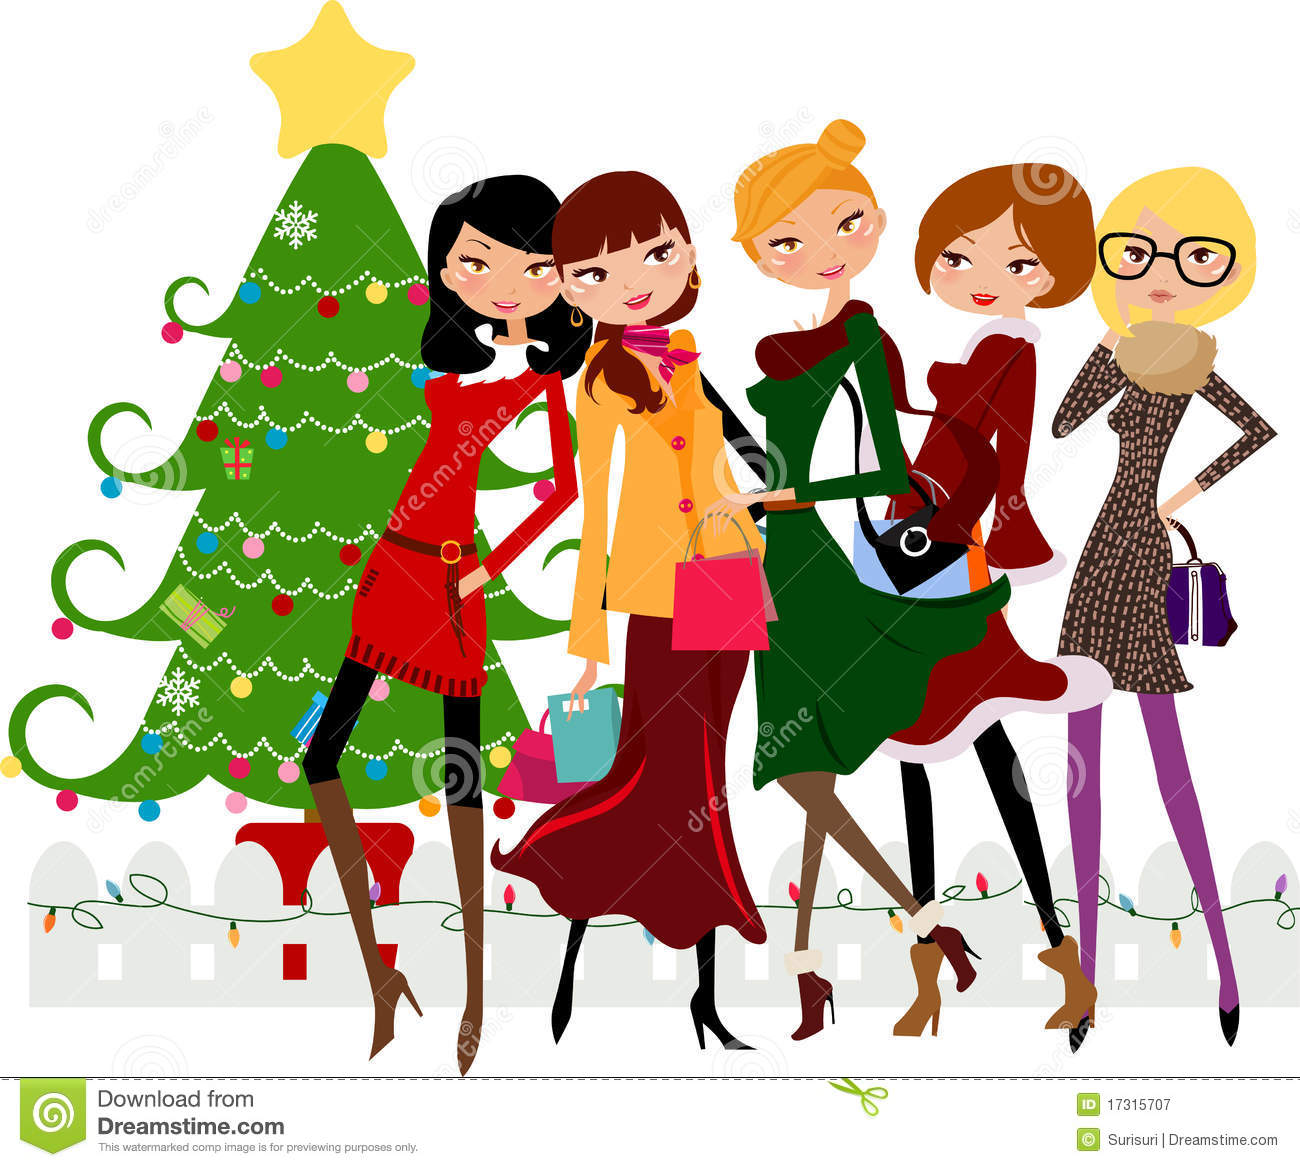 Christmas Party Images Clip Art.Ladies Christmas Party Clipart 20 Free Cliparts Download